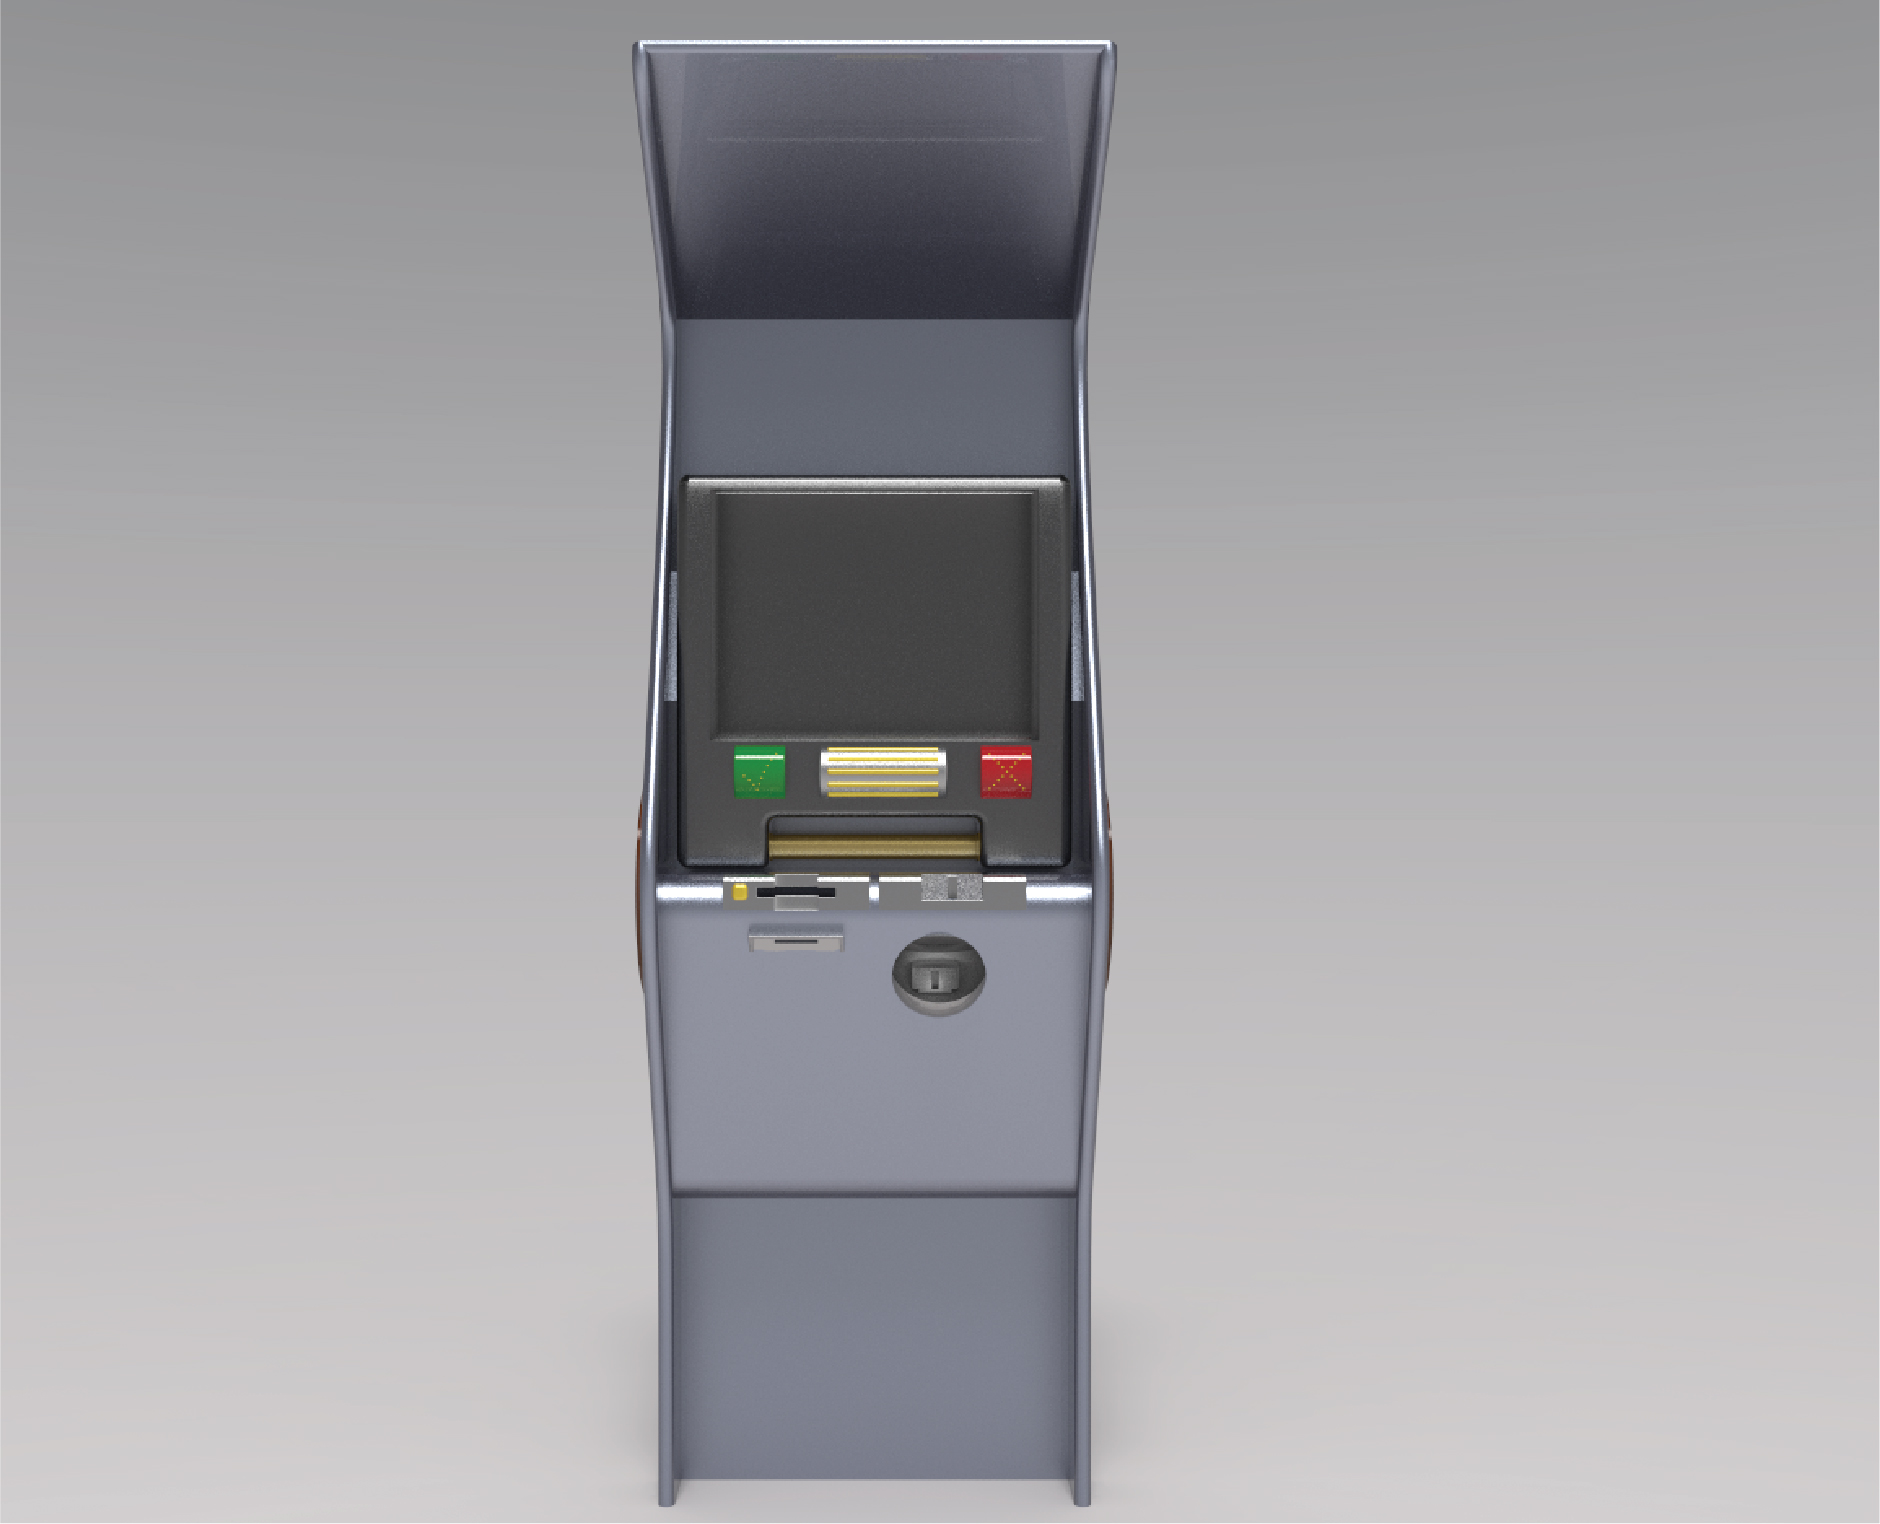 Front View of Parking Meter